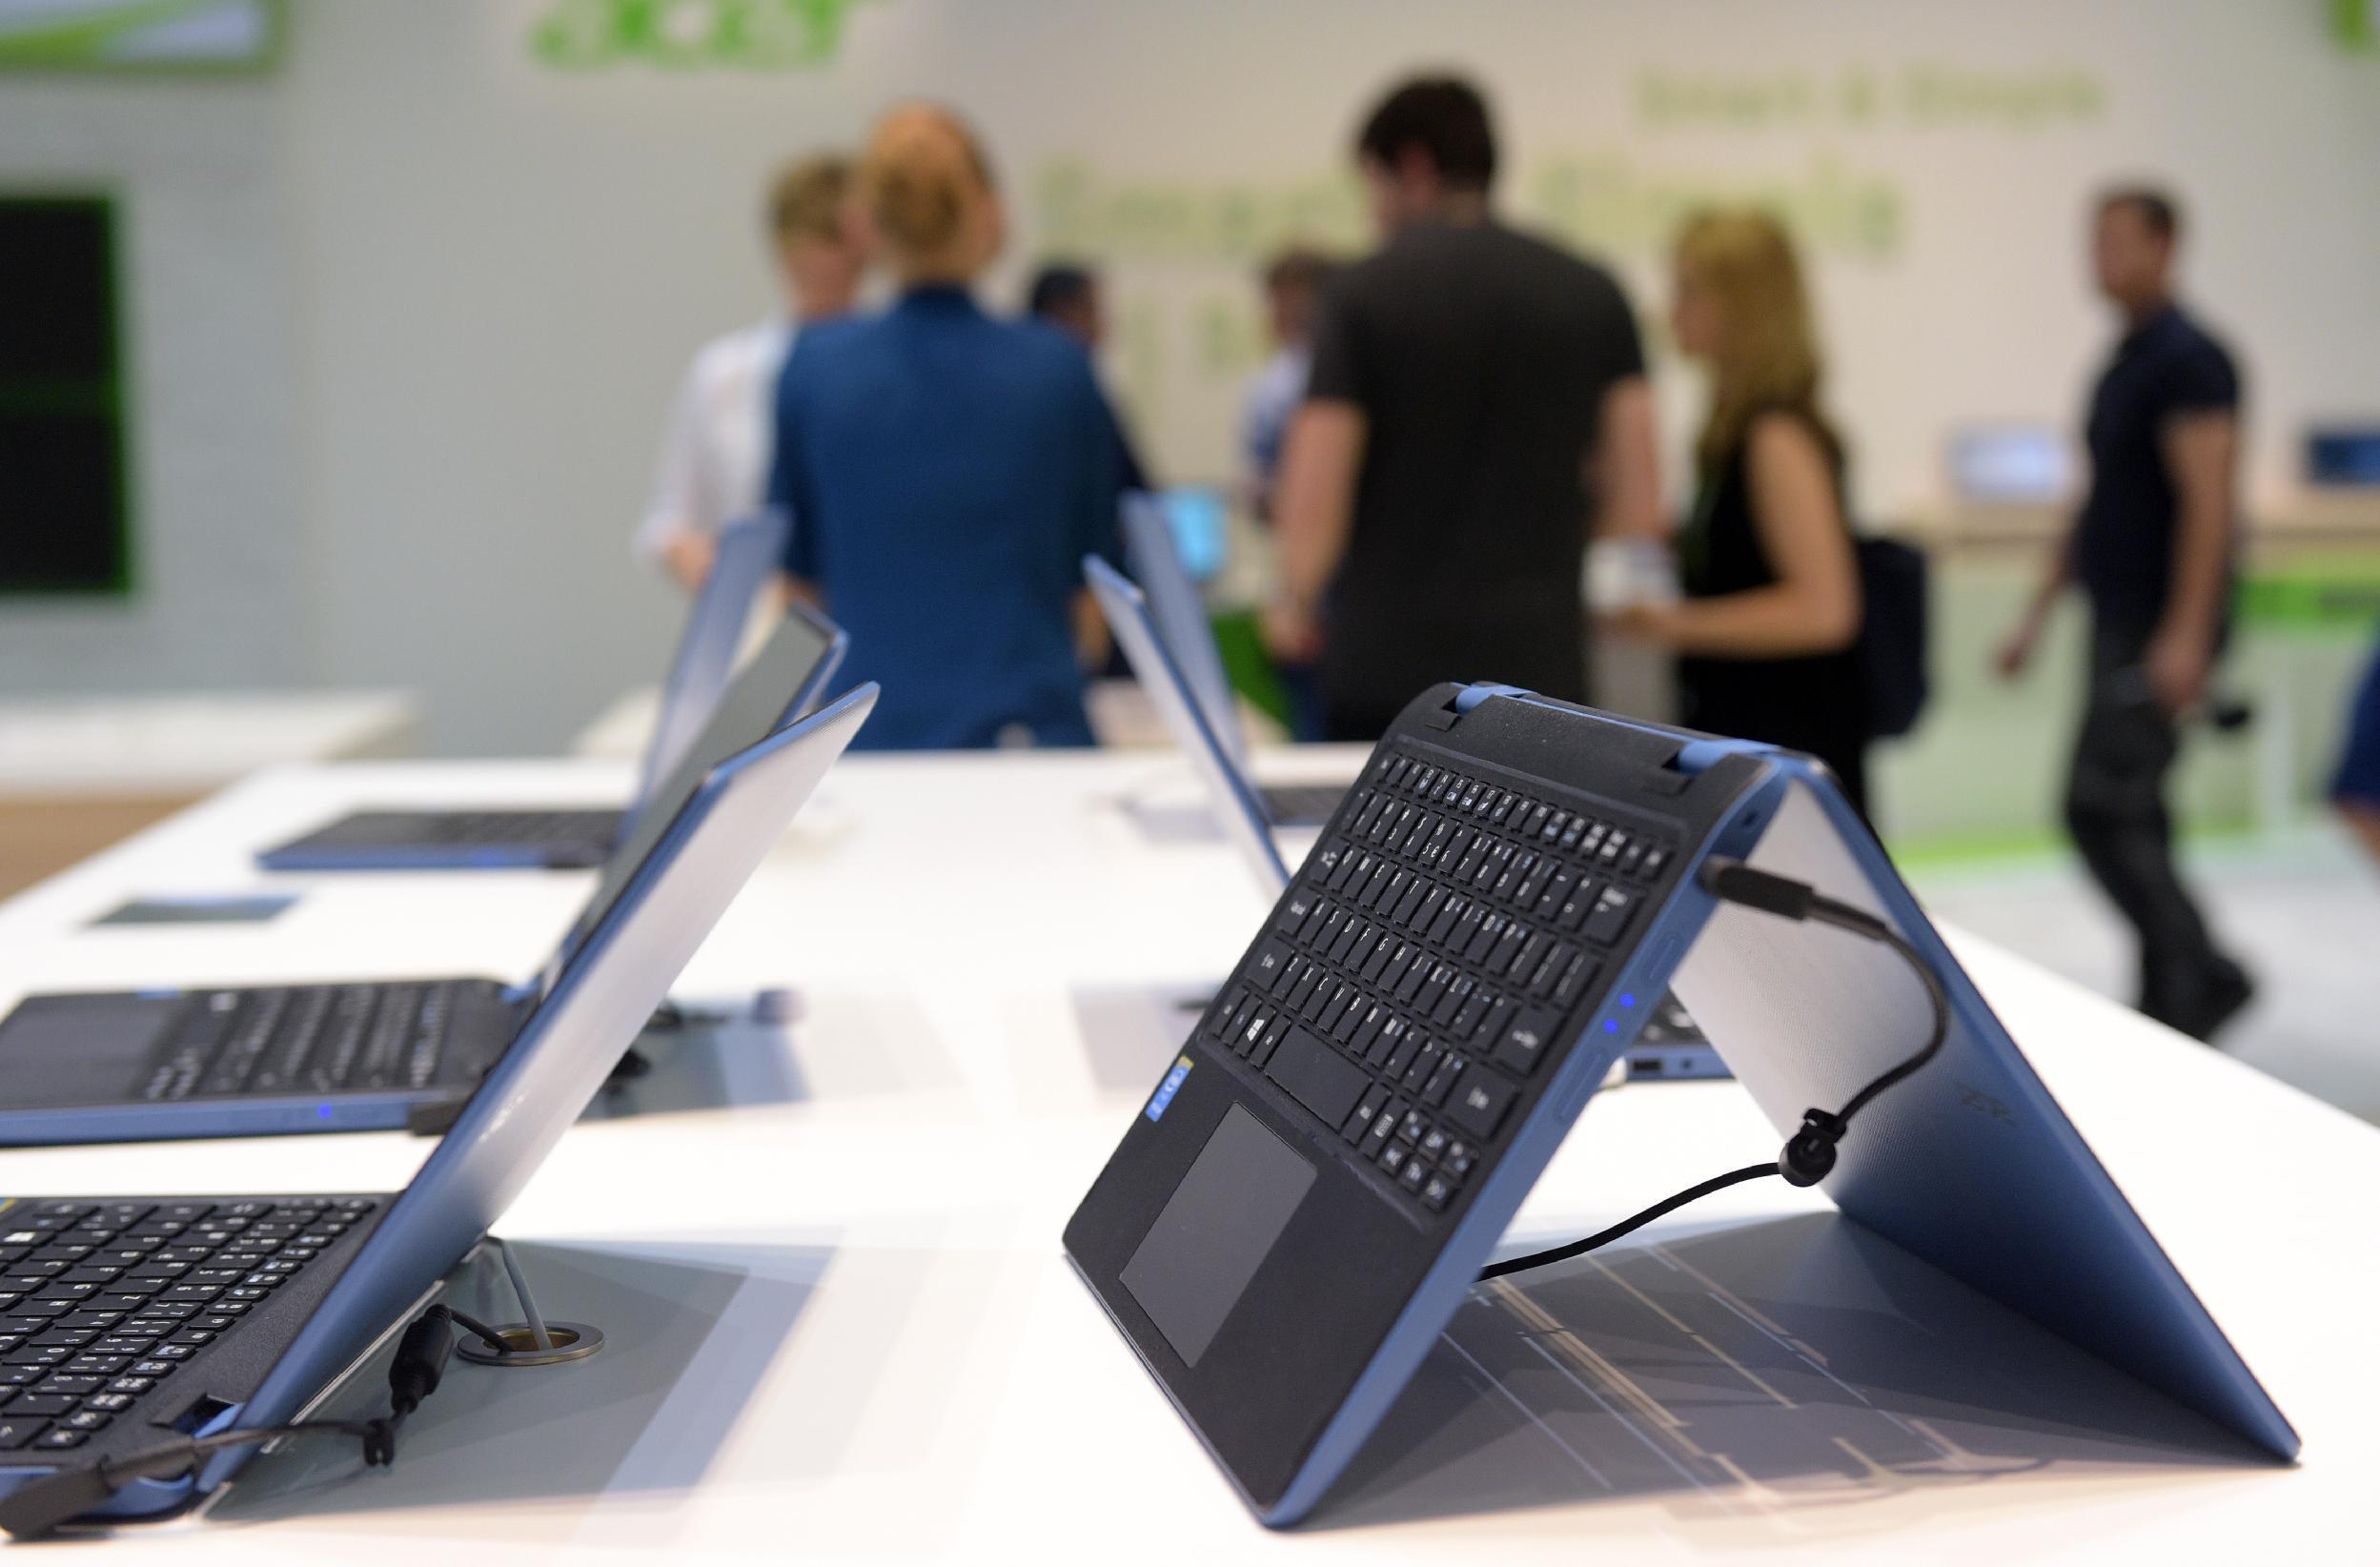 Wave of new Windows 10 devices on show at Berlin tech fair